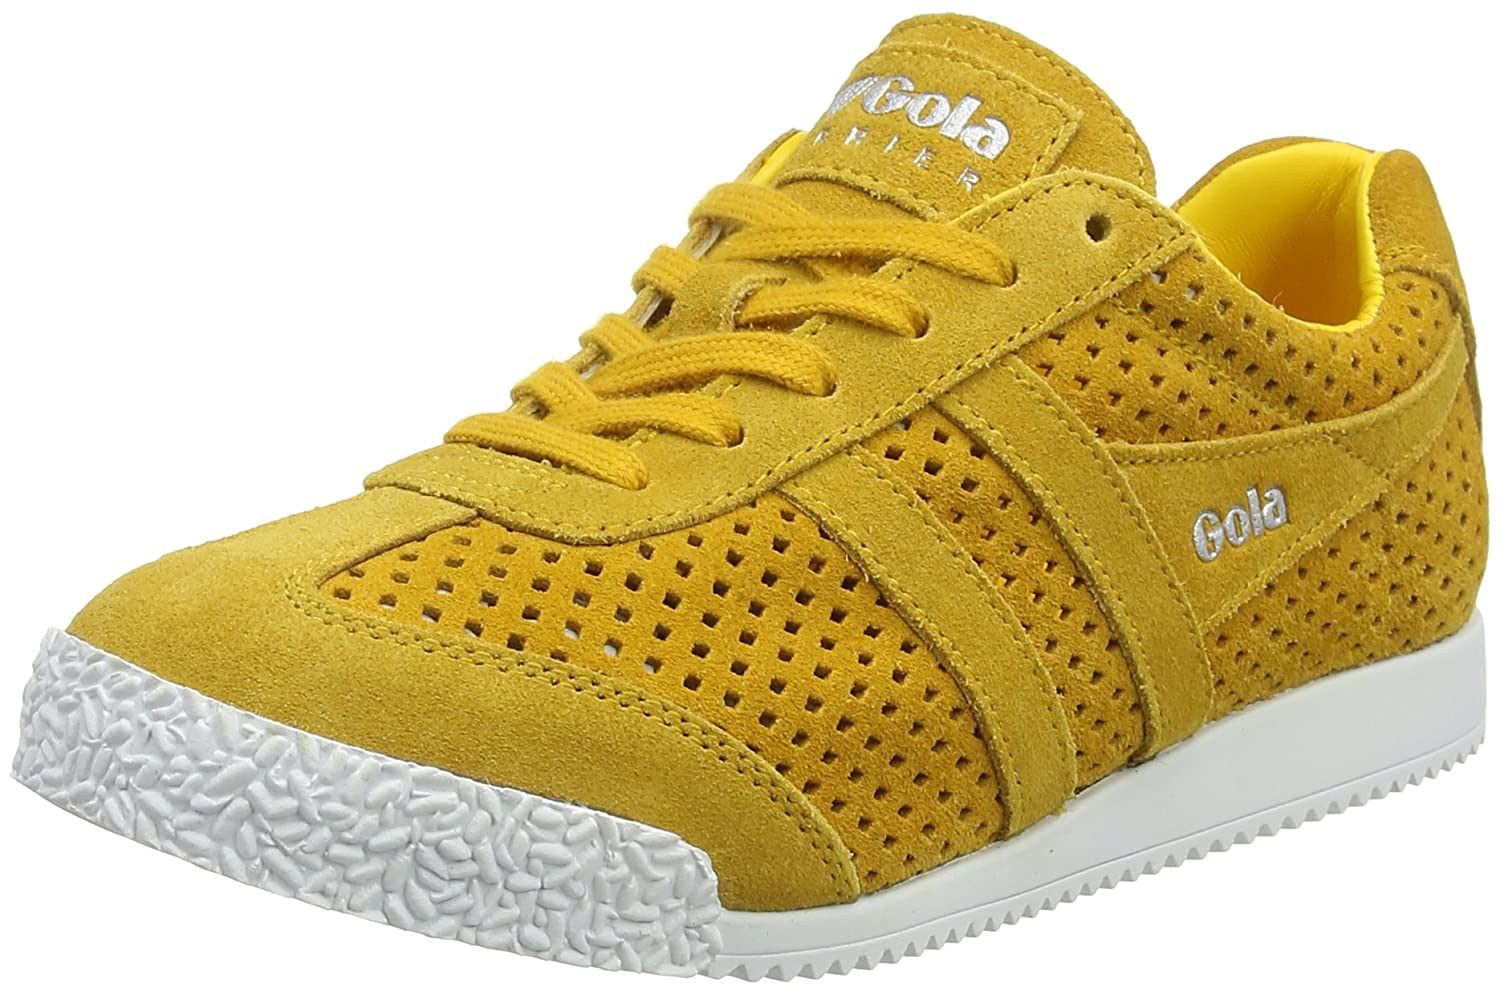 uk store exclusive range outlet store Amazon.com: Gola Women's Harrier Squared Sun Trainers ...